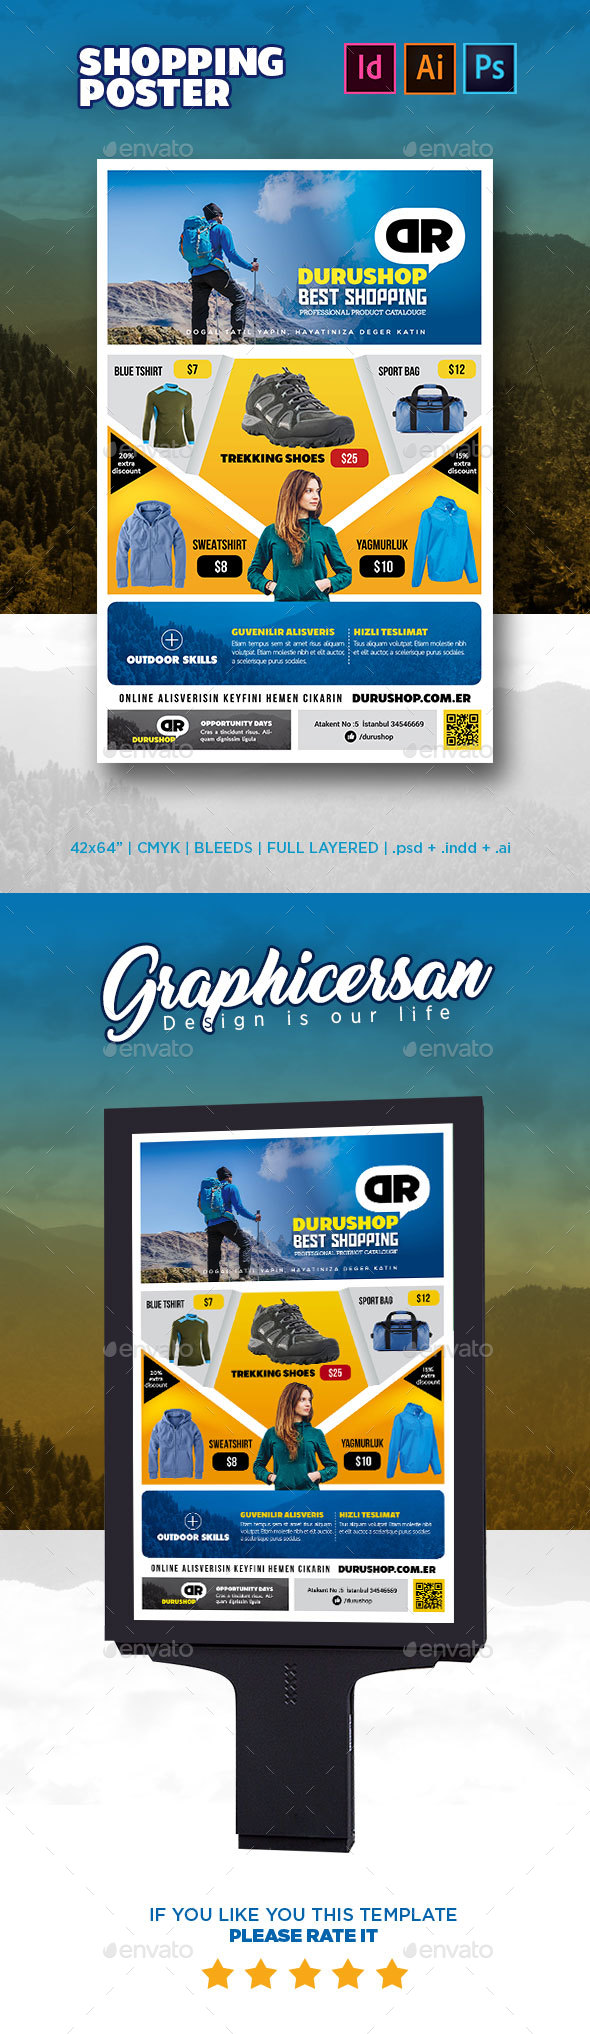 GraphicRiver Shopping Poster 20827415